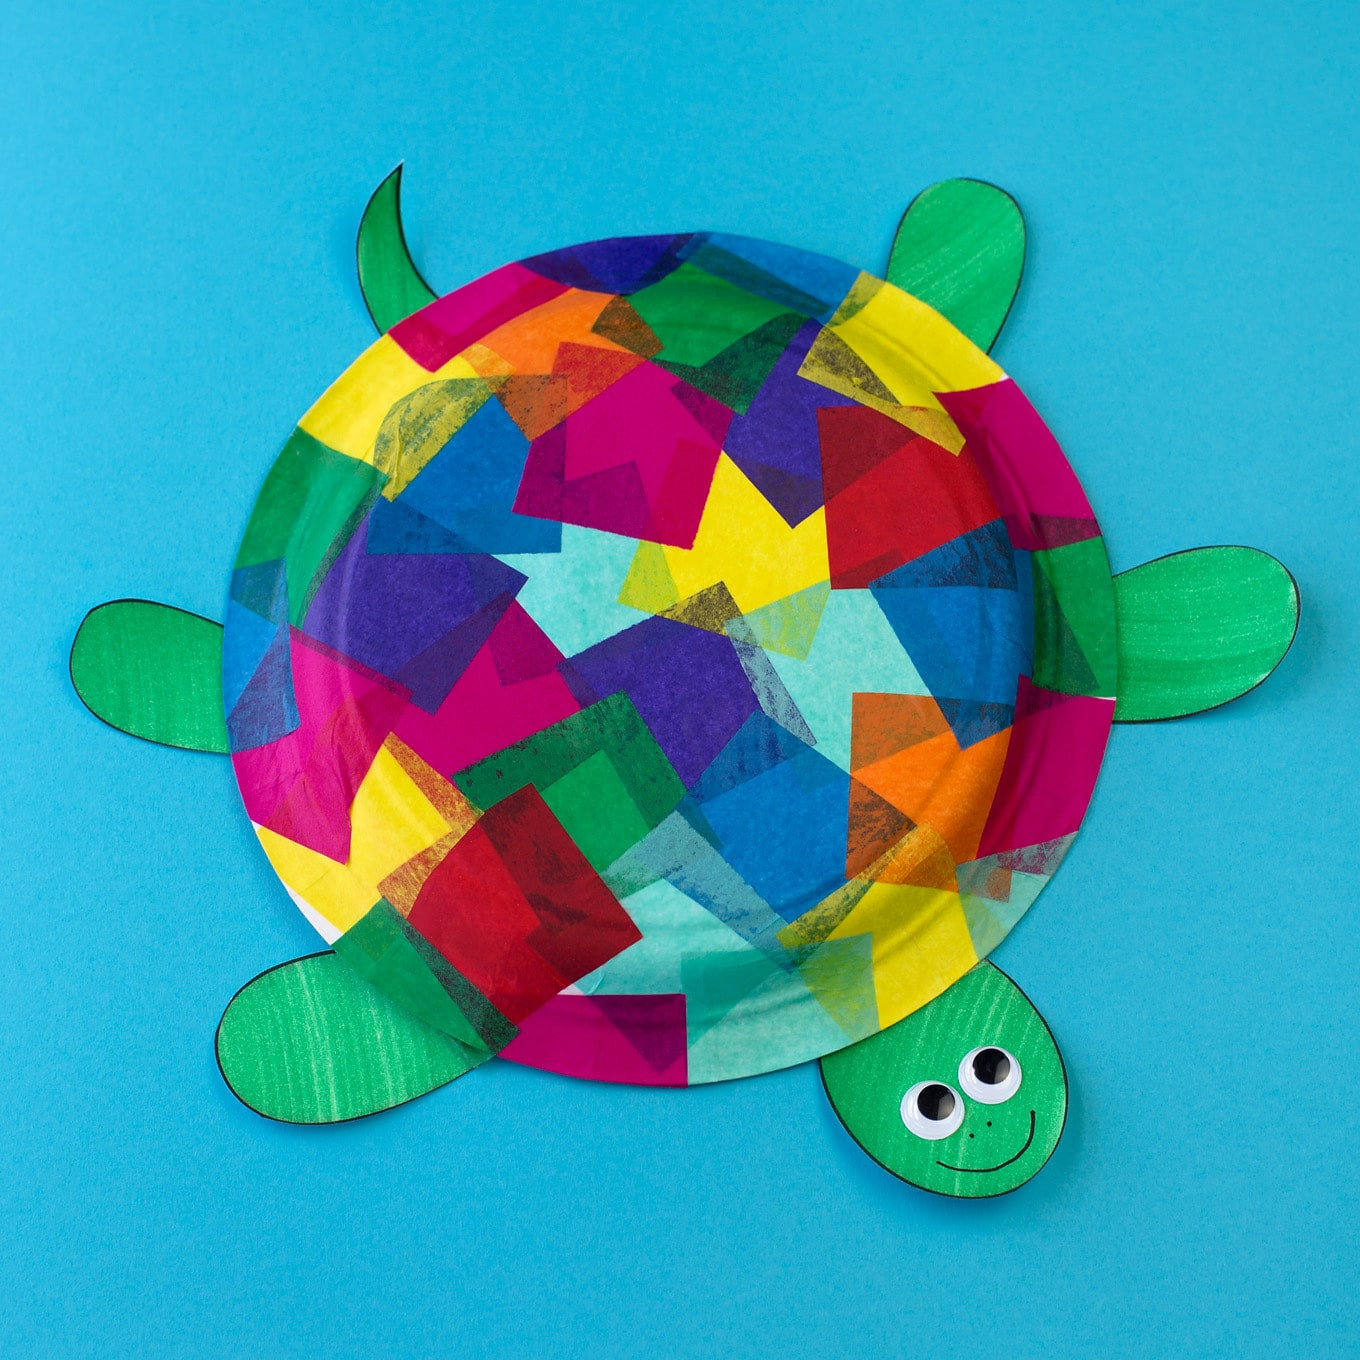 Best ideas about Arts And Crafts For Children . Save or Pin Tissue Paper and Paper Plate Turtle Craft Now.